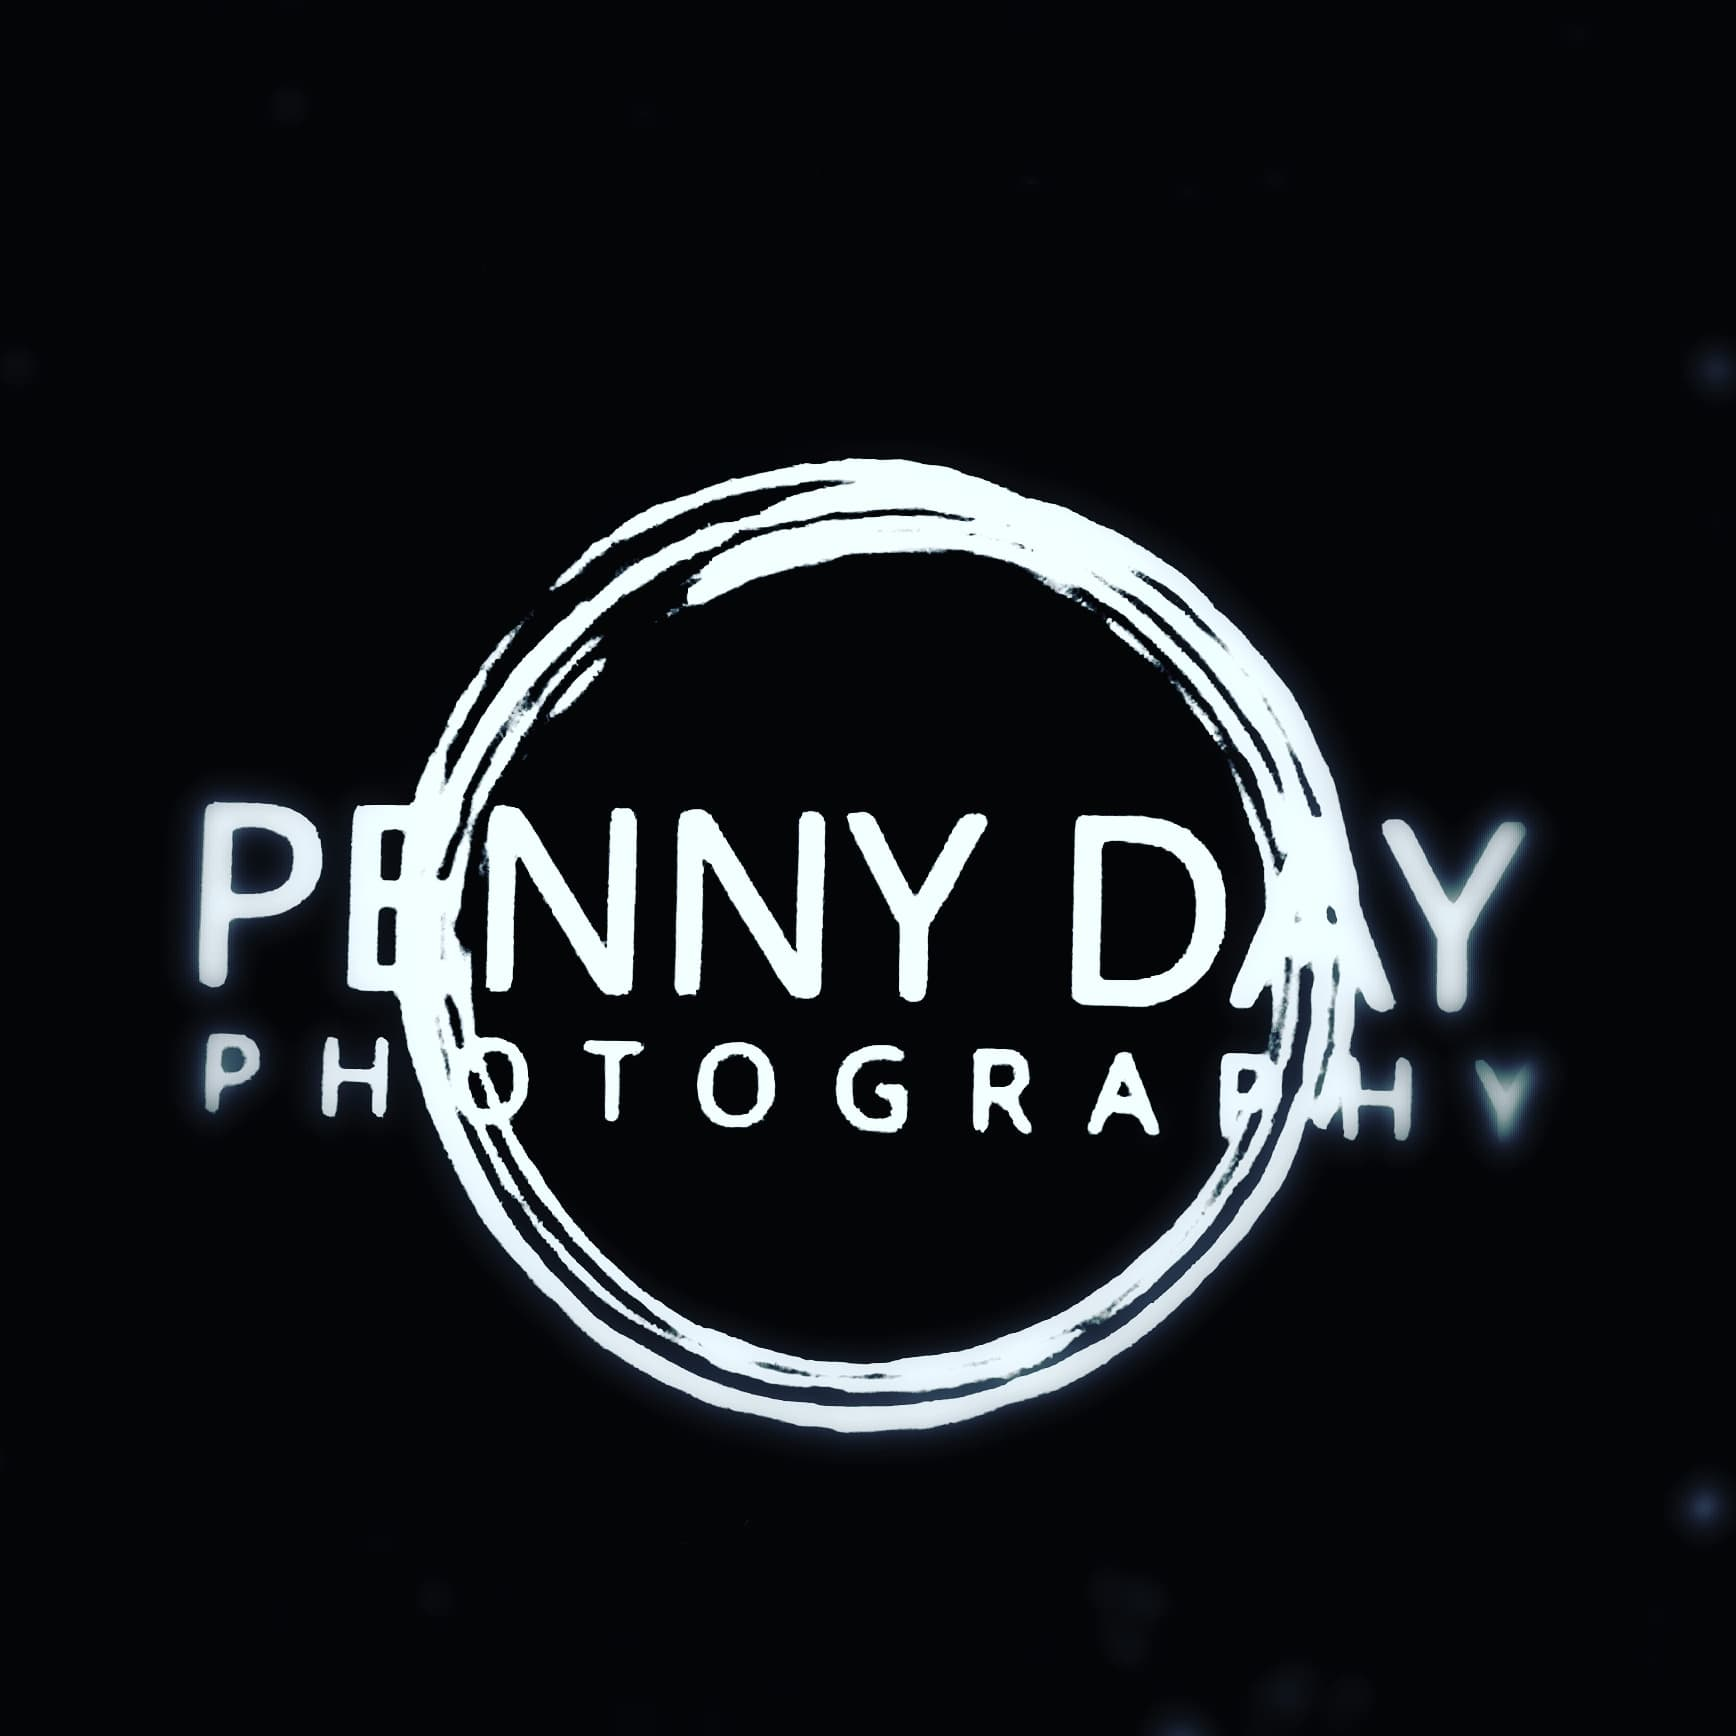 Penny Day Photography